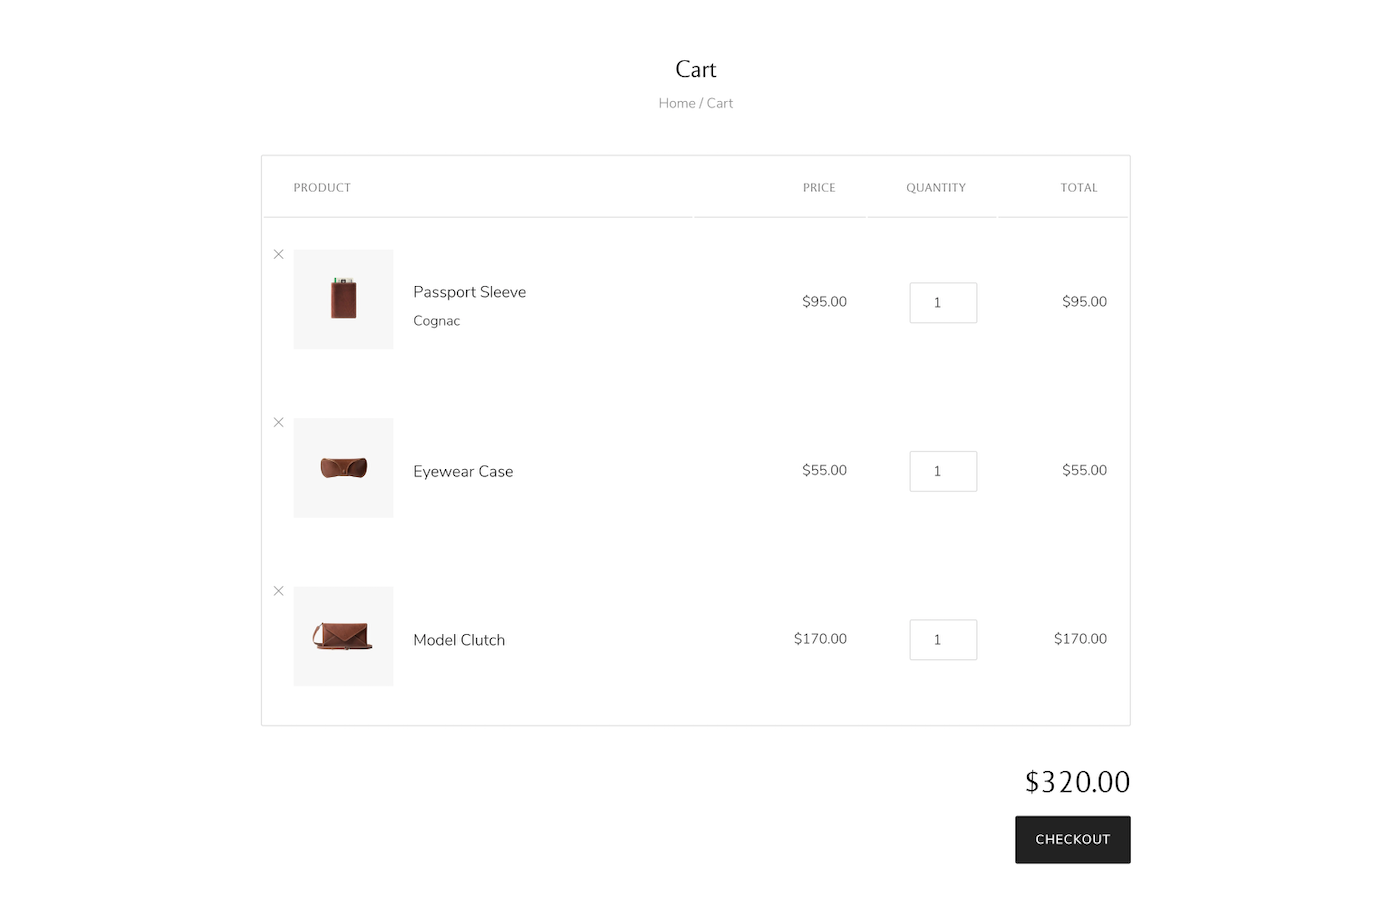 Grid_s_cart_page_with_three_items_and_checkout_button.png